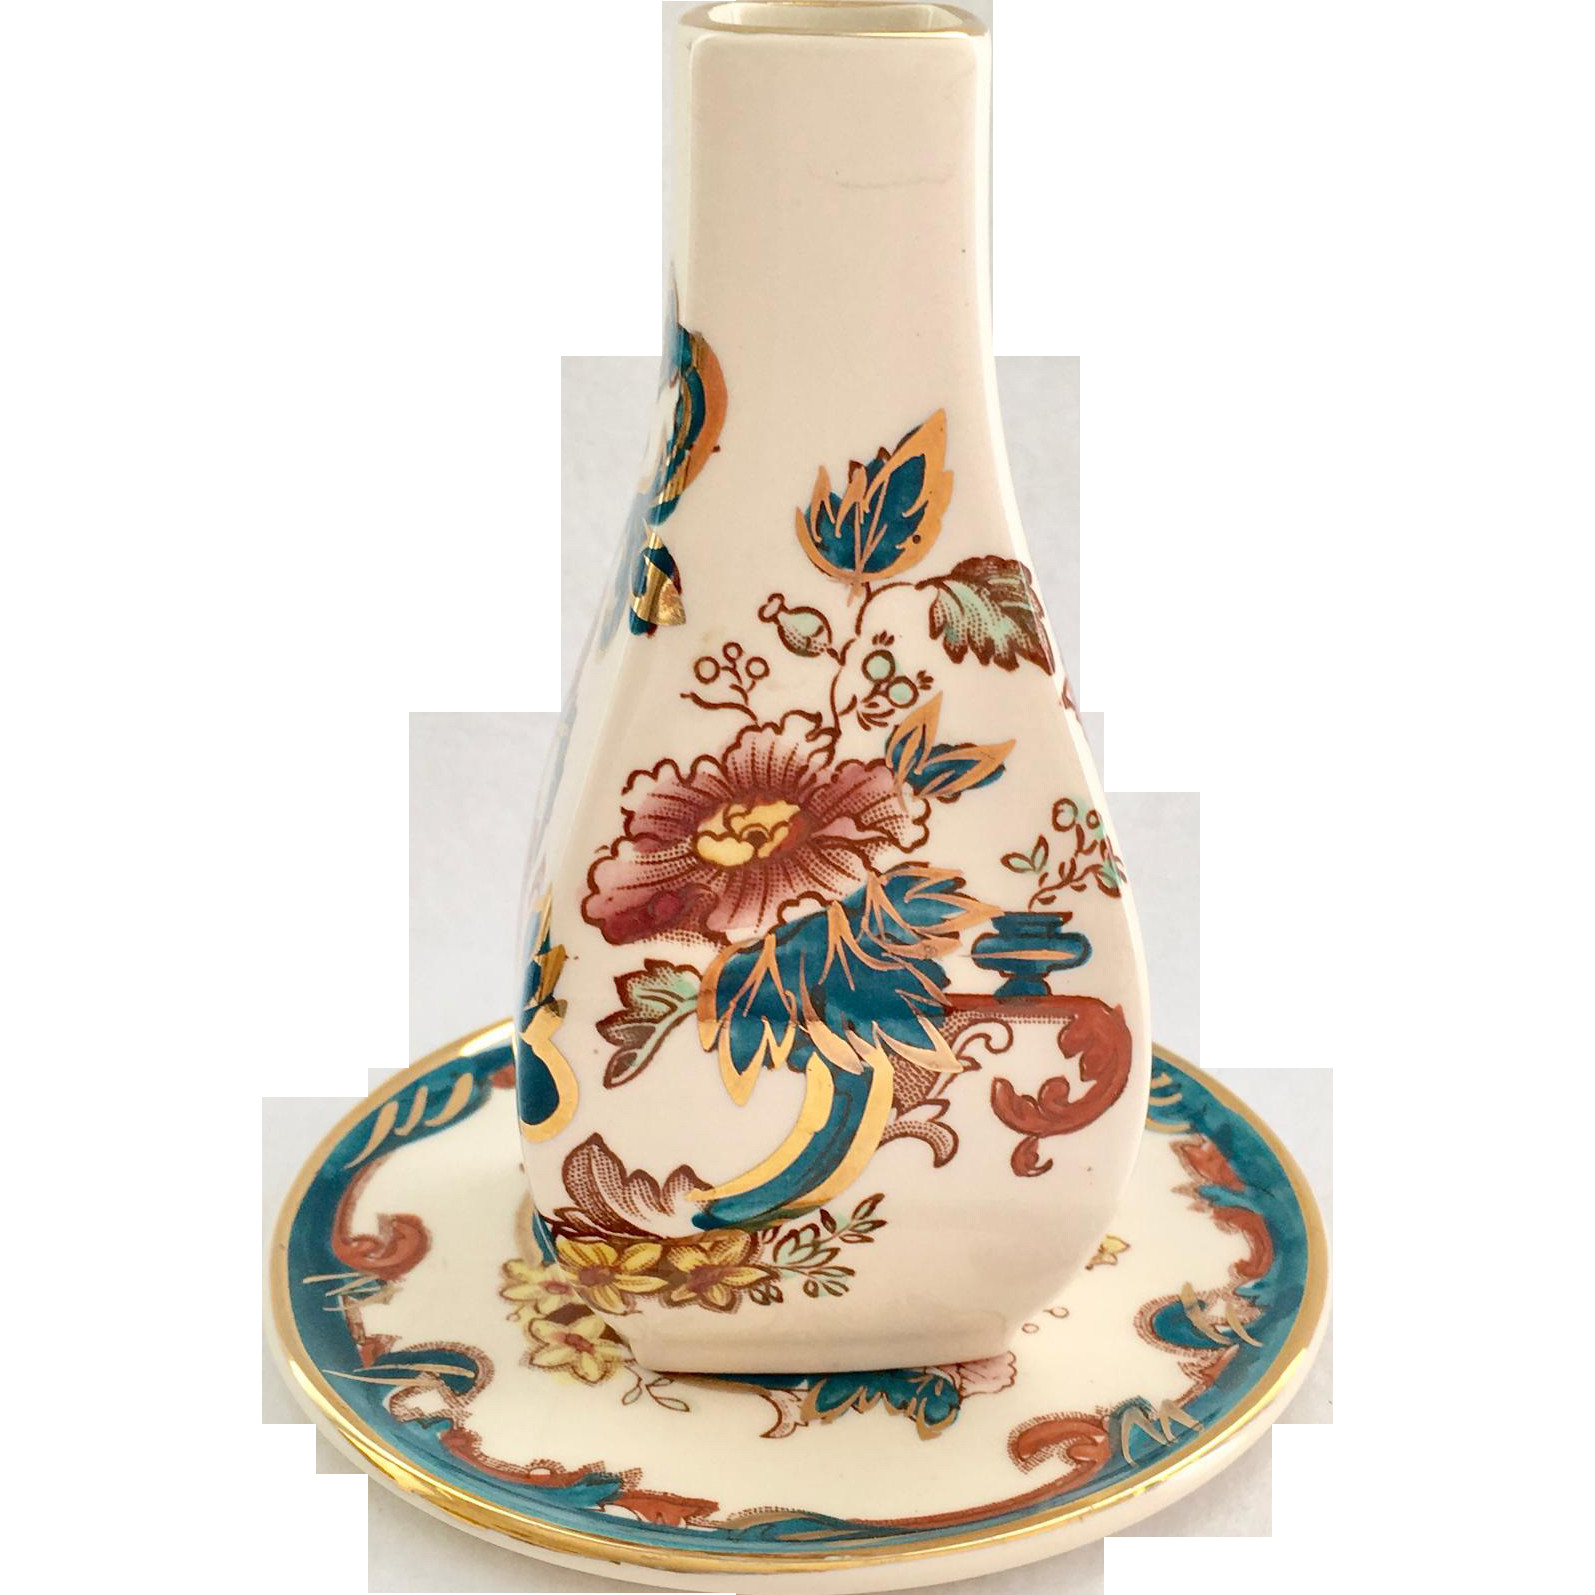 royal albert china vase of masons england java ironstone bud vase and underplate 22karat gold intended for this lucky find is masons england java pattern in an ironstone bud vase and underplate decorated with 22karat gold the printed asian style design of